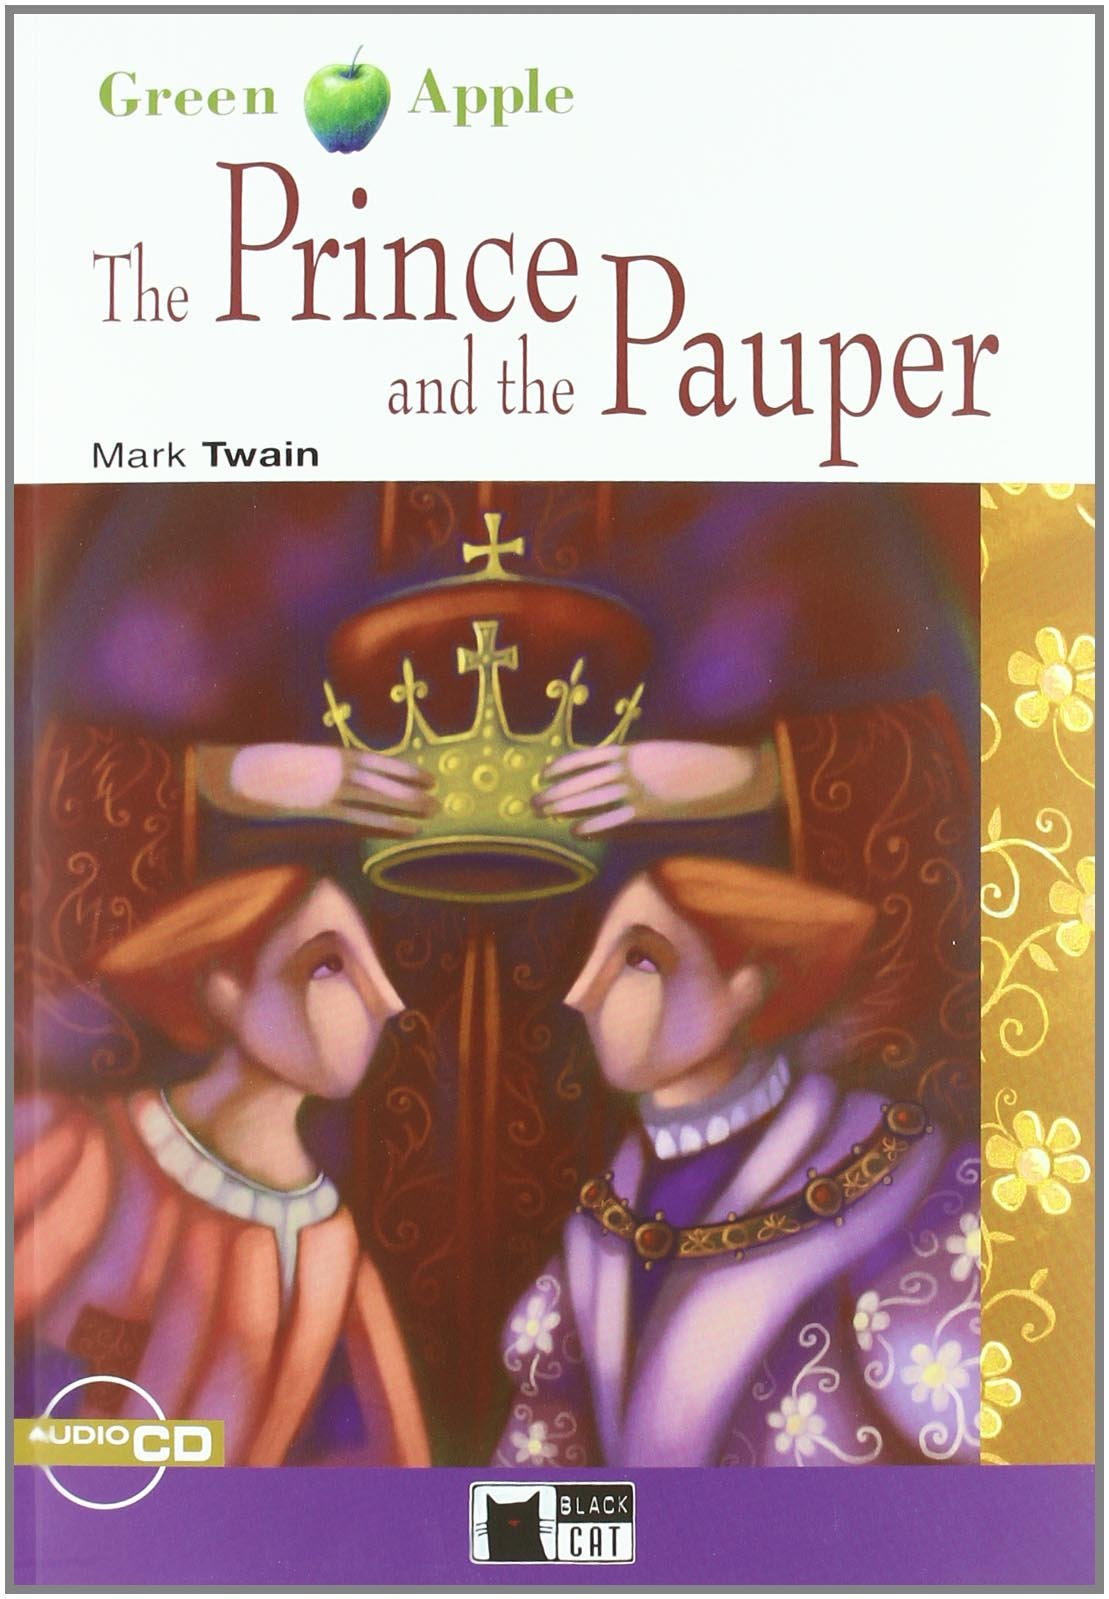 Prince And The Pauper (The) Bk +D марк твен the prince and the pauper